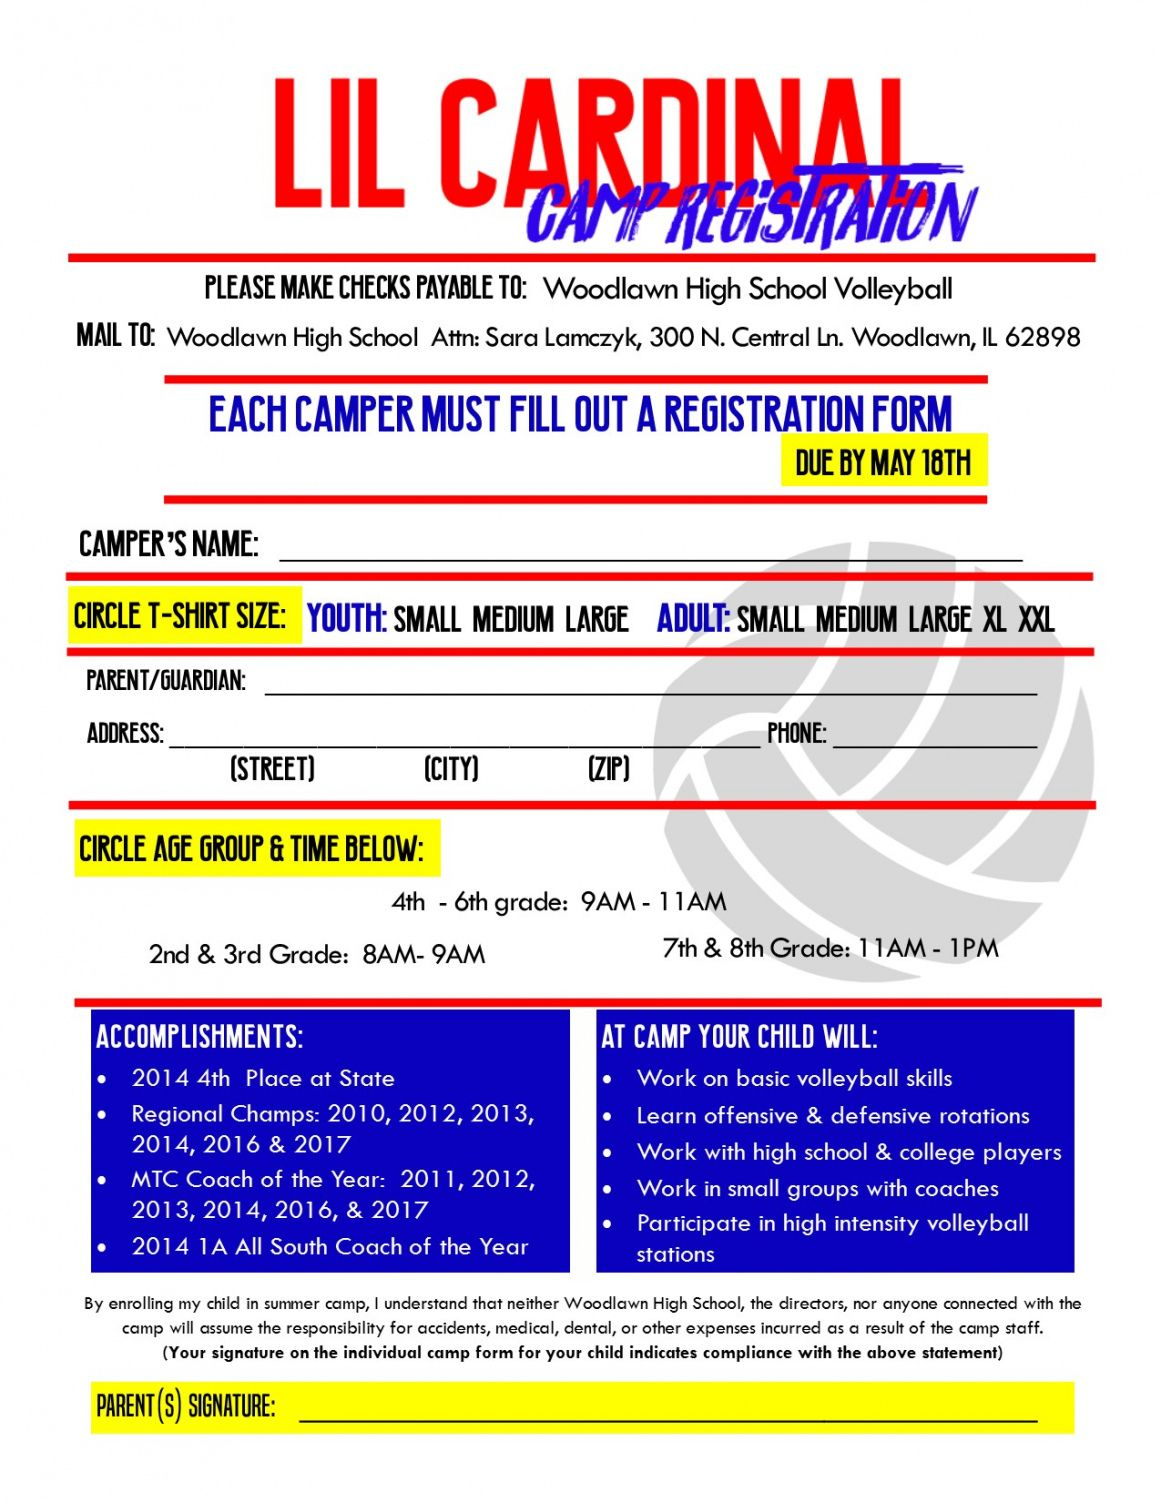 free woodlawn schools  lil cardinal volleyball camp volleyball registration form template example